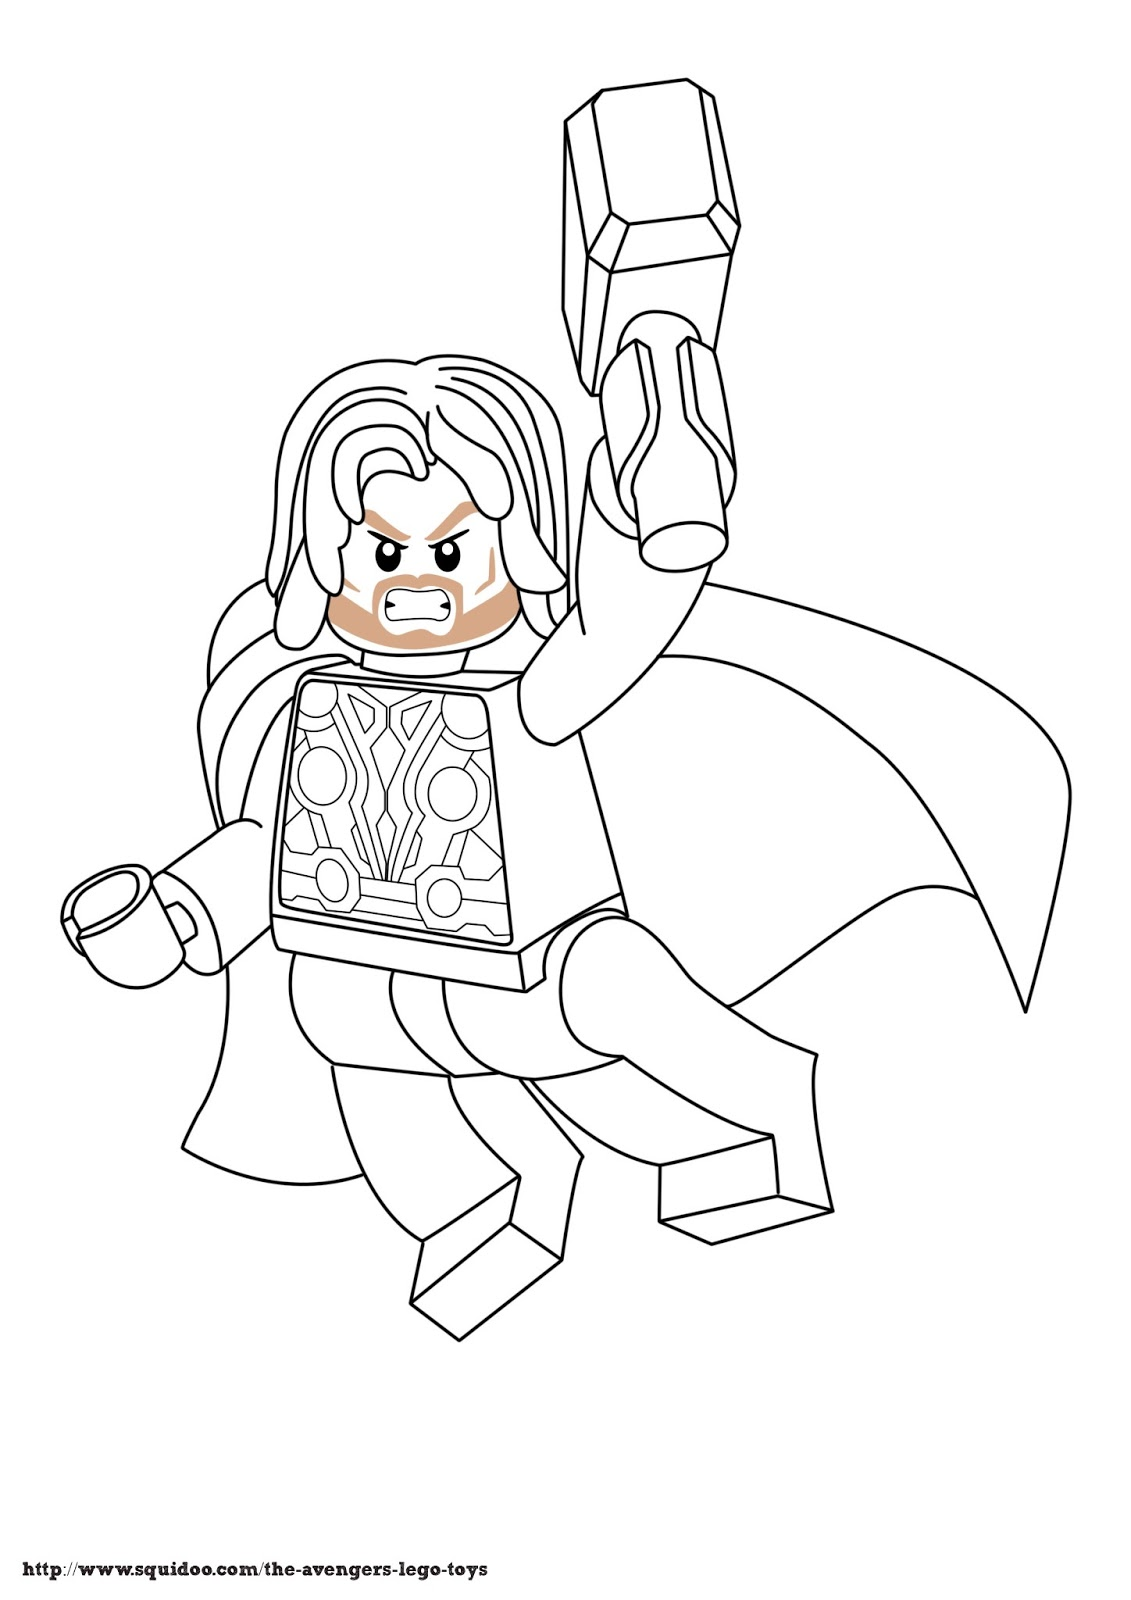 avengers lego coloring pages lego marvel avengers coloring pages at getcoloringscom avengers pages lego coloring